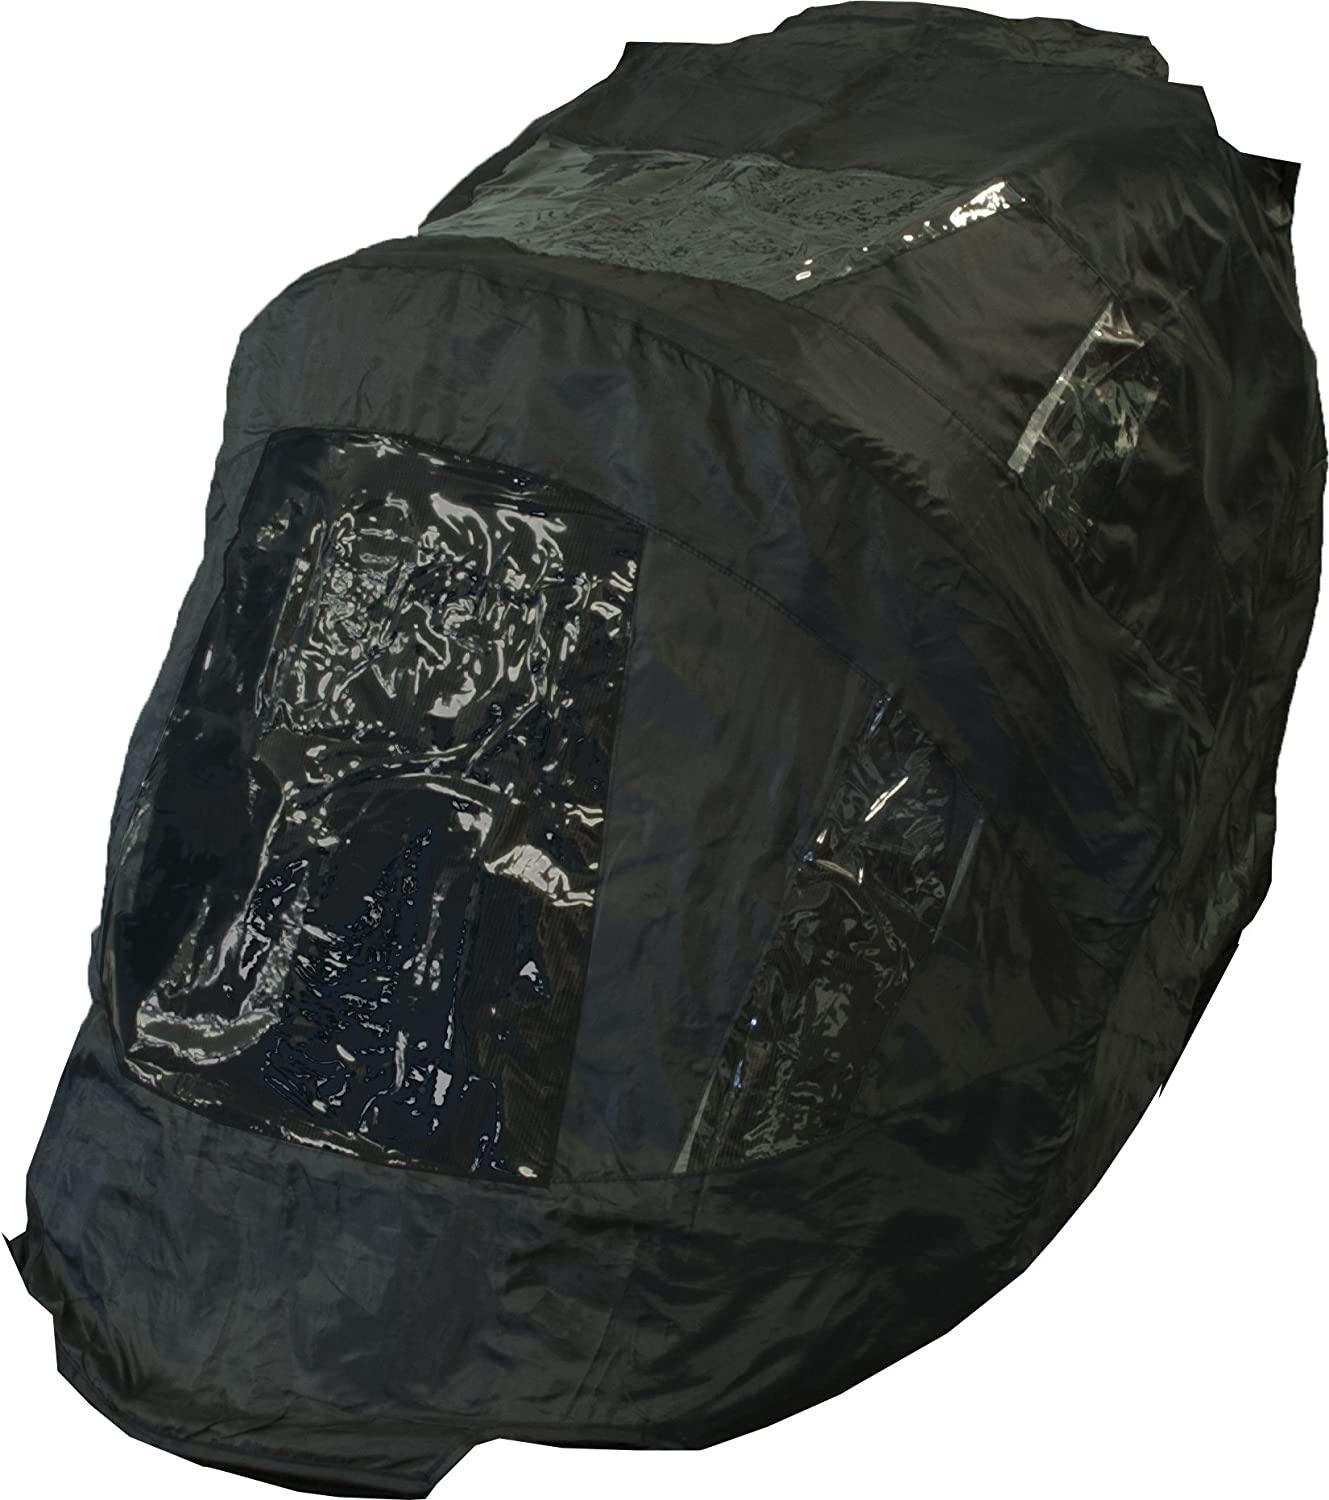 Black Extra-Large Weather Cover Only Black Extra-Large Weather Cover Only Pet Gear PG8850NZWC No-Zip Expedition Weather Cover, Black